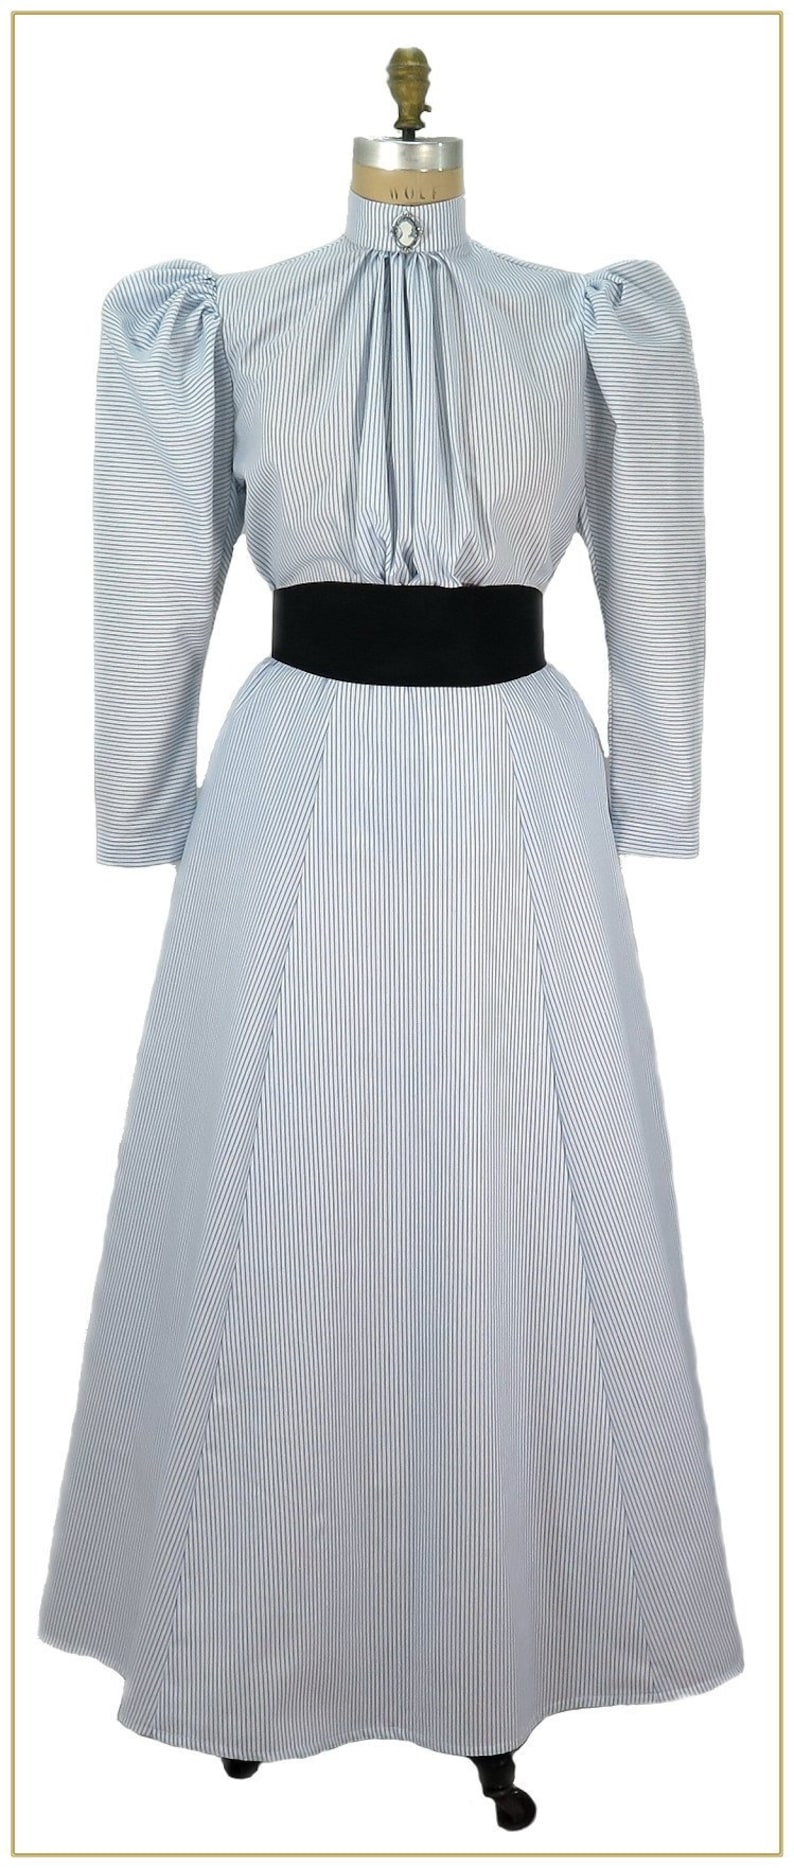 Edwardian Ladies Clothing – 1900, 1910s, Titanic Era 1895-1905 Striped Maid Skirt  $59.00 AT vintagedancer.com